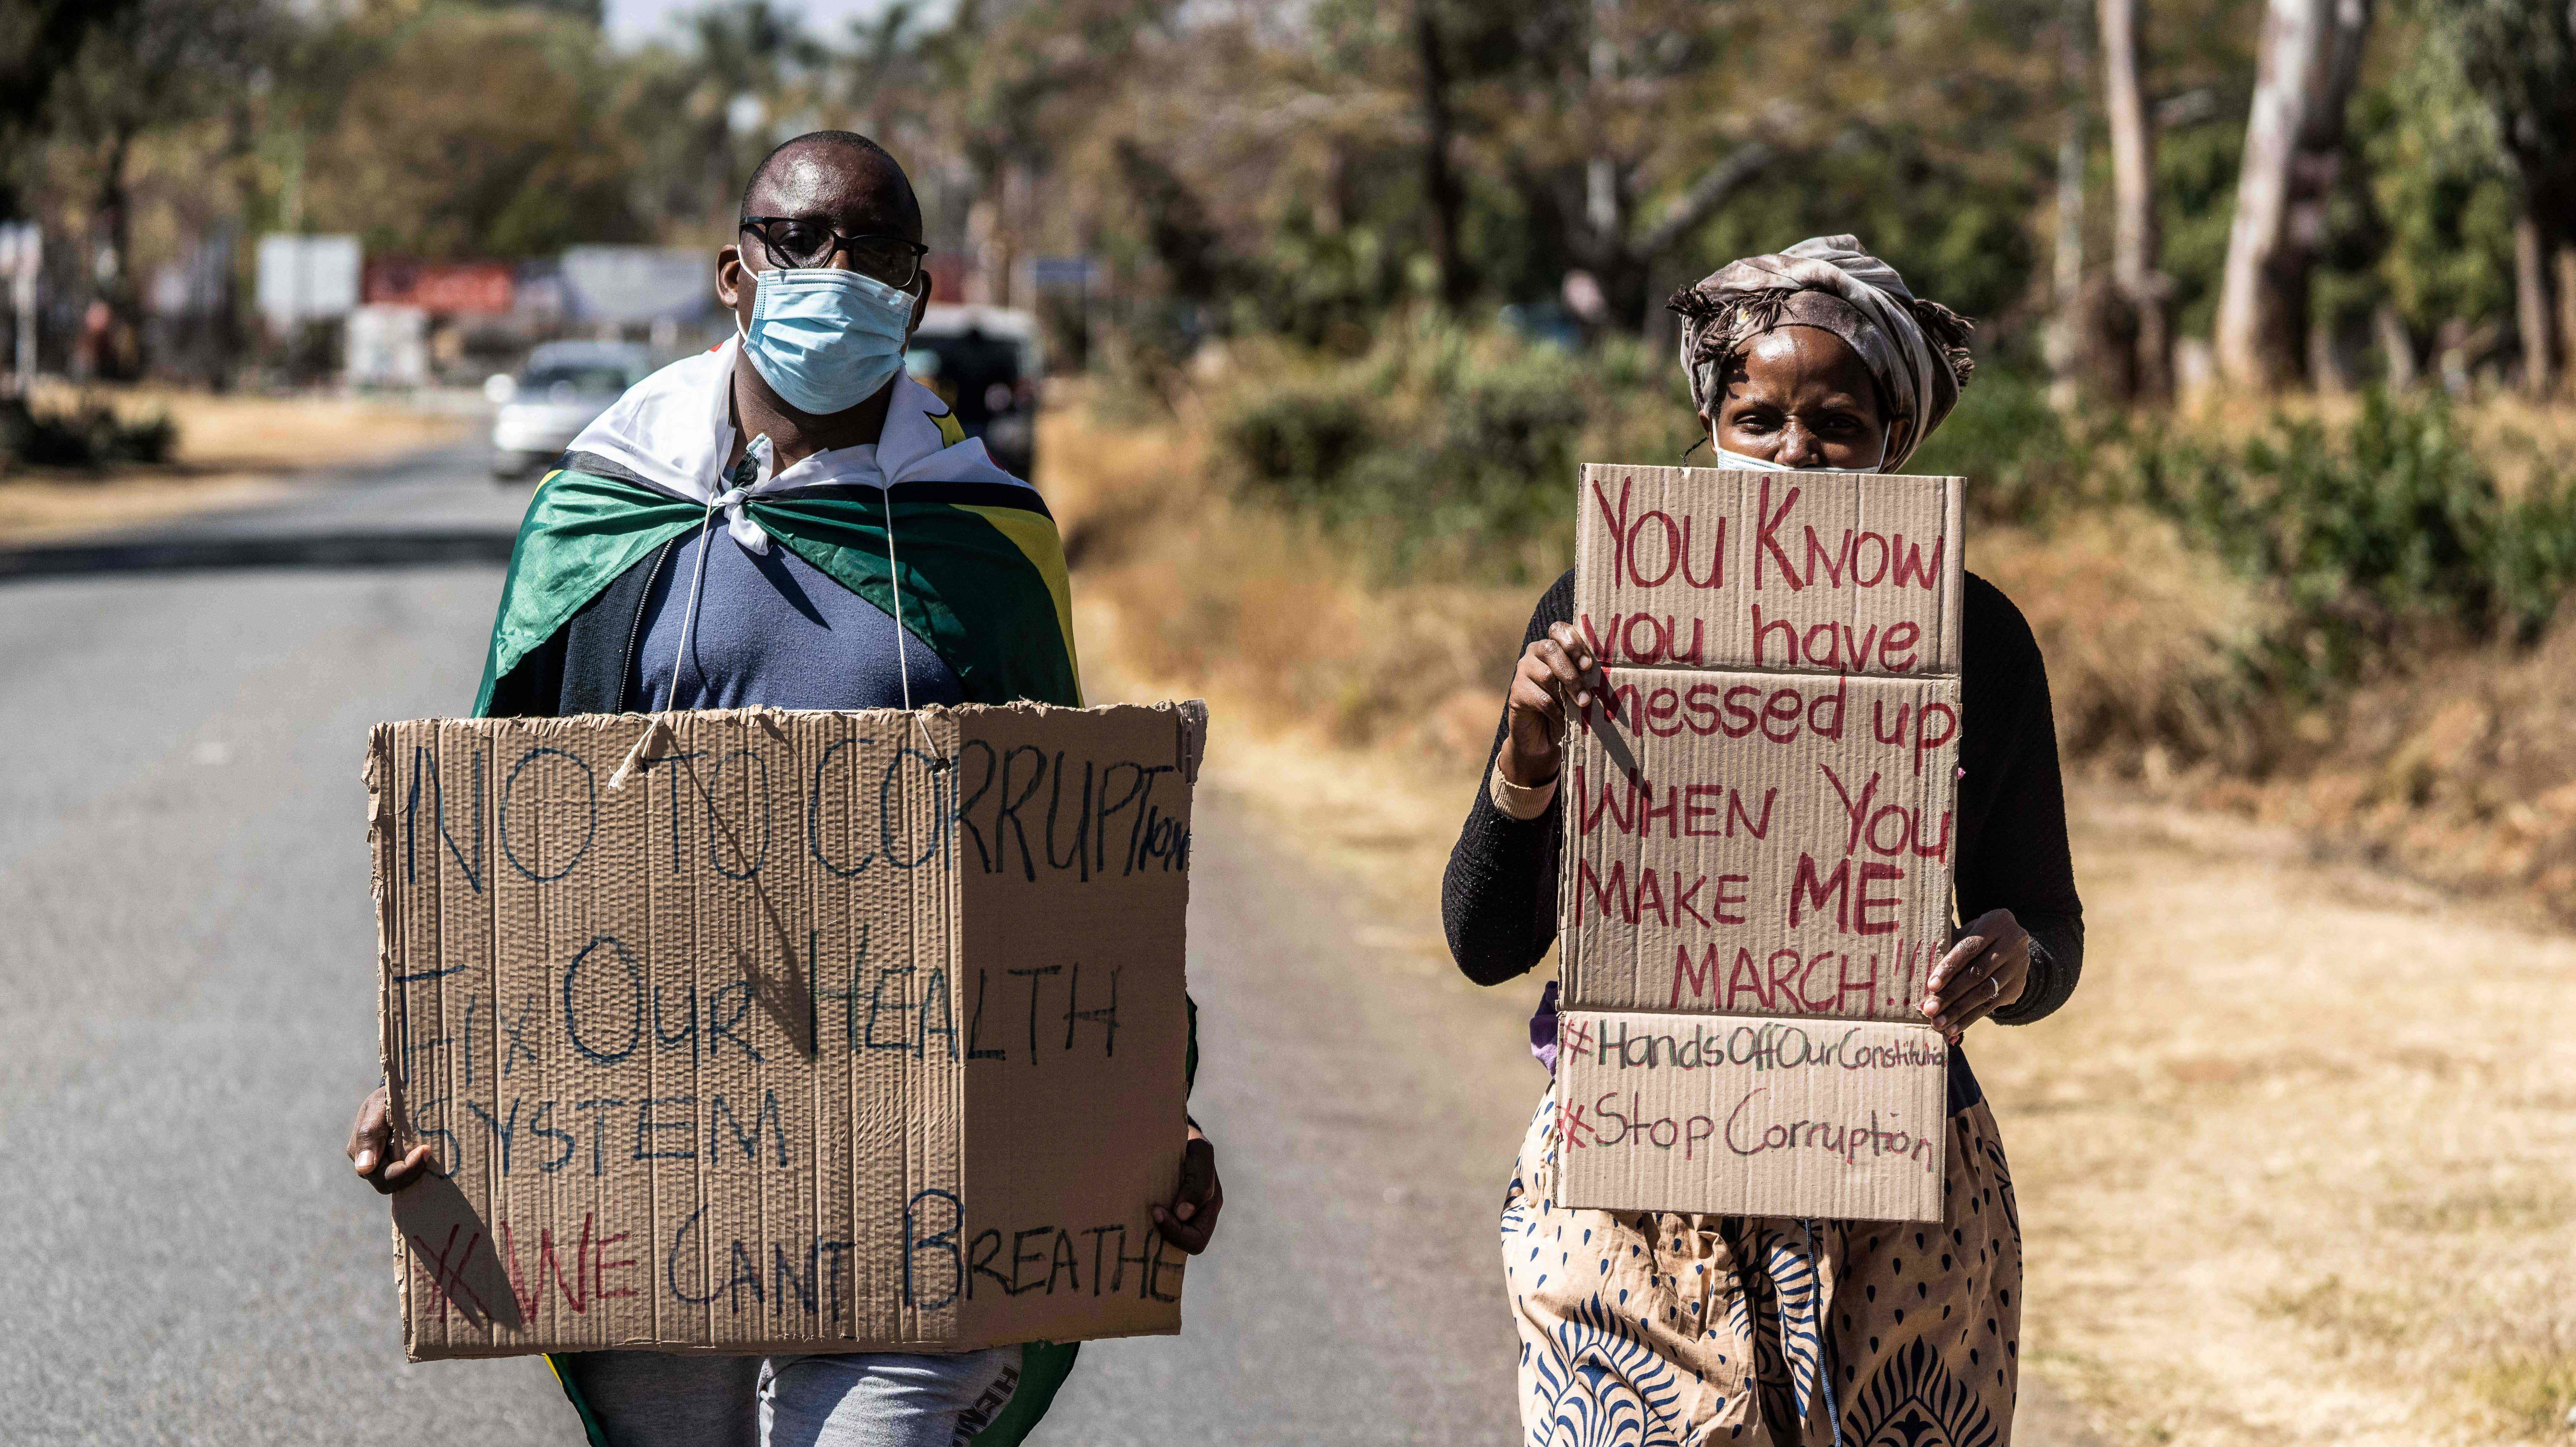 An anti-corruption protest march in Harare last July. The Black Lives Matter protest movement in the US reverberated through Zimbabwe last year, and continues to have impact.